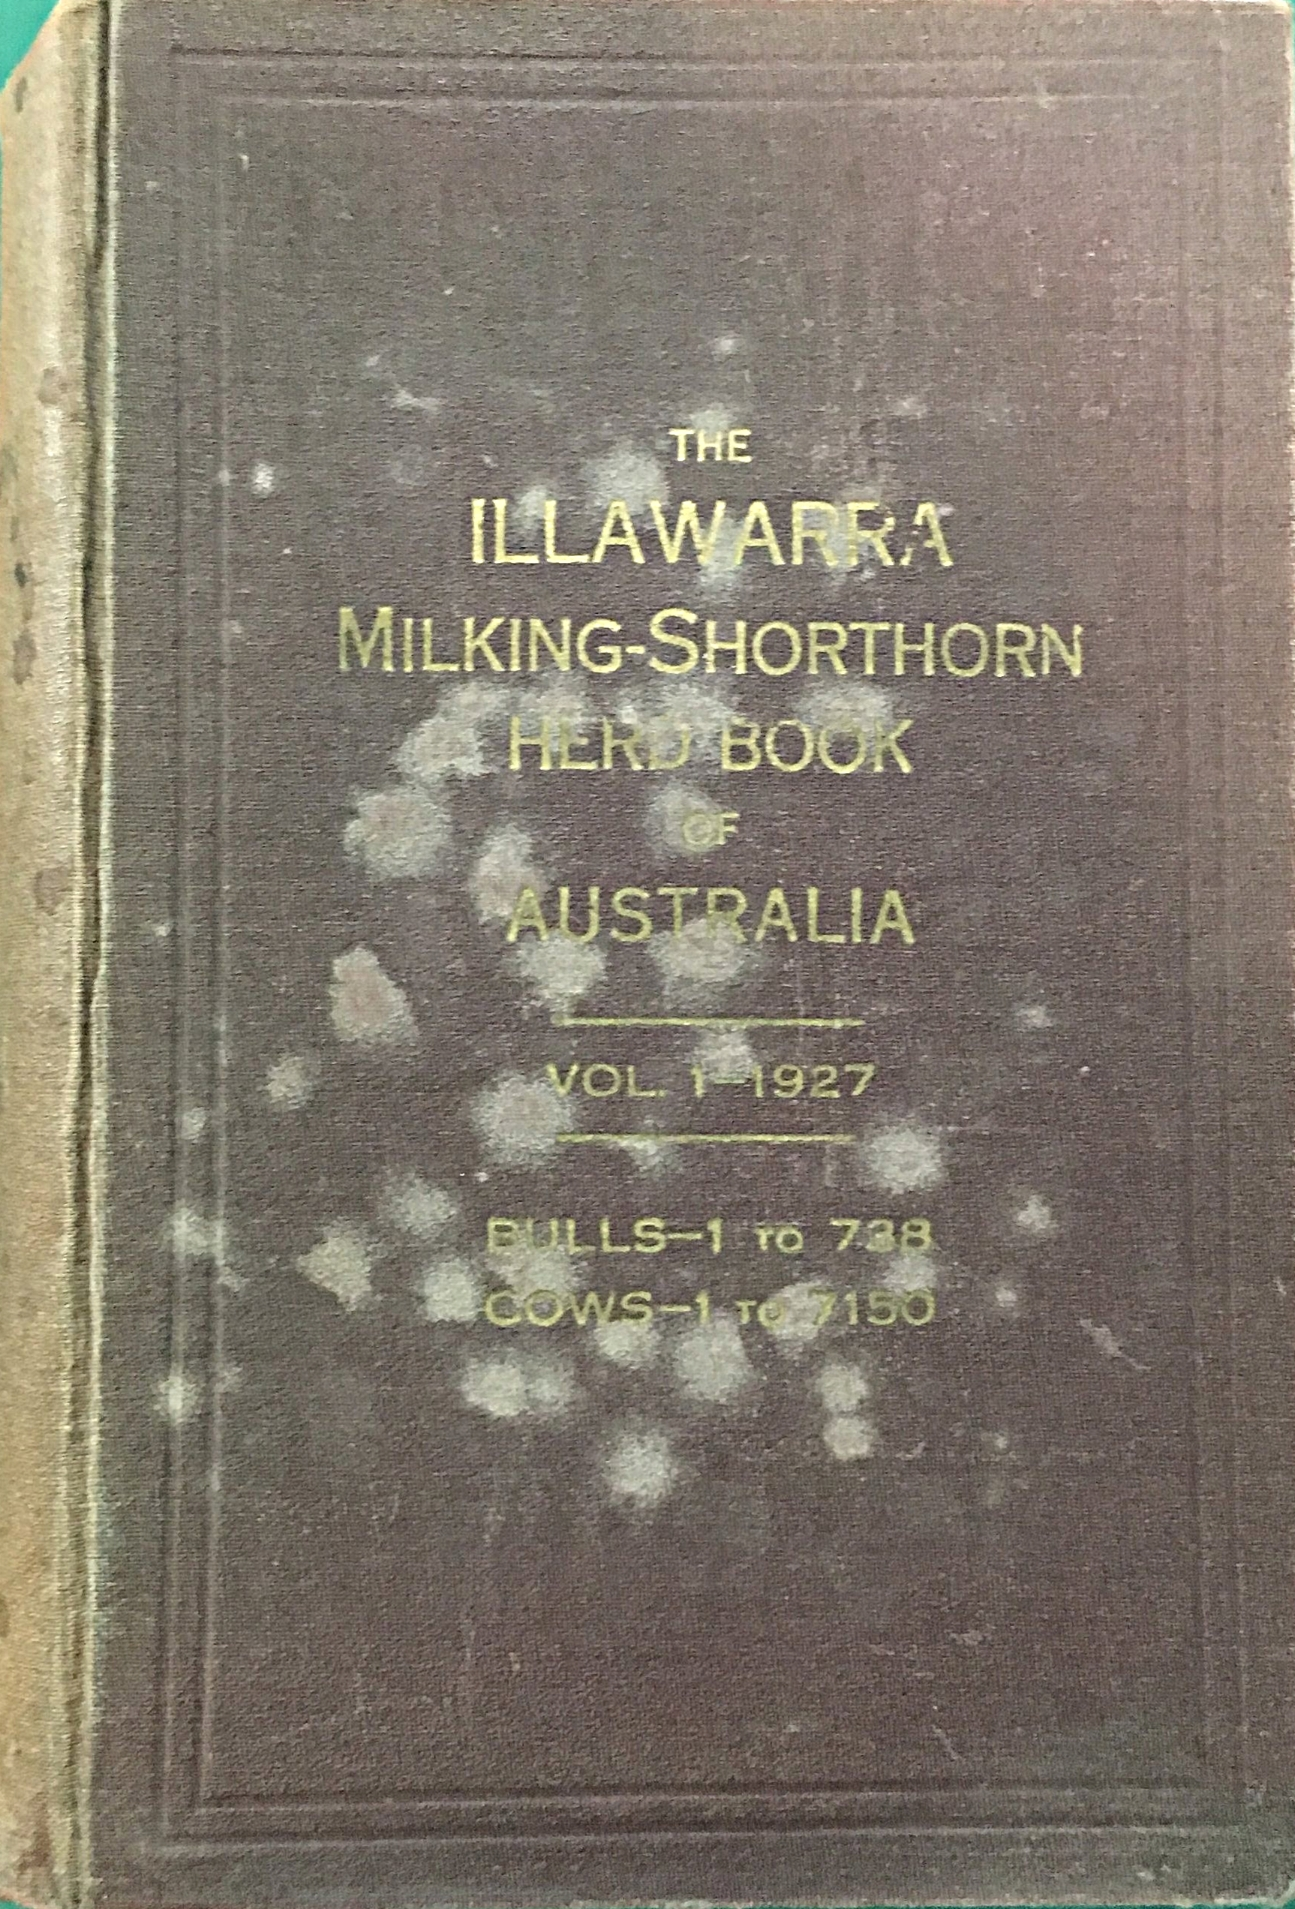 The Illawarra Milking-Shorthorn Herd Book of Australia. Vol 1 1927. Bulls - 1 to 738. Cows - 1 to 7150